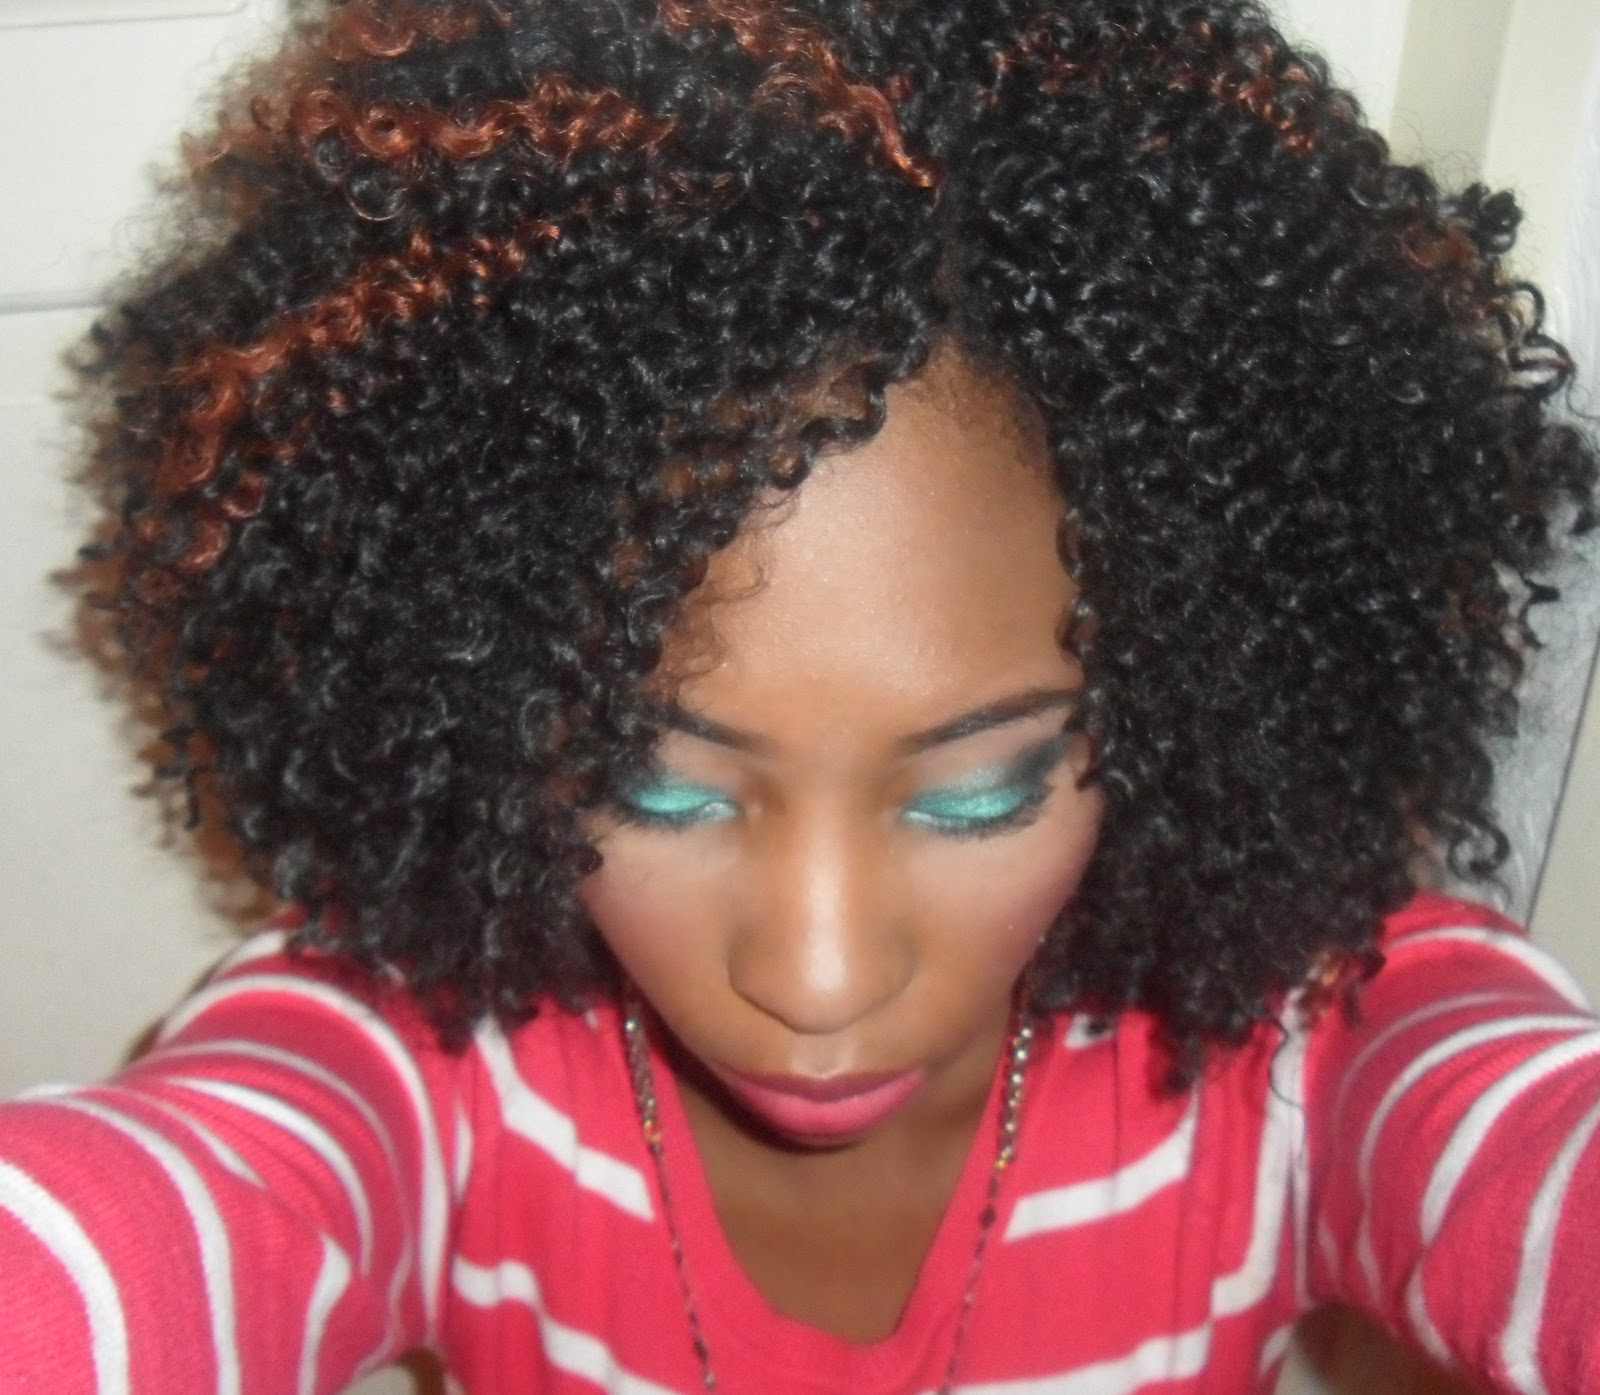 Crochet Hair : Project RayRay: PROTECTIVE STYLE: Crochet braids